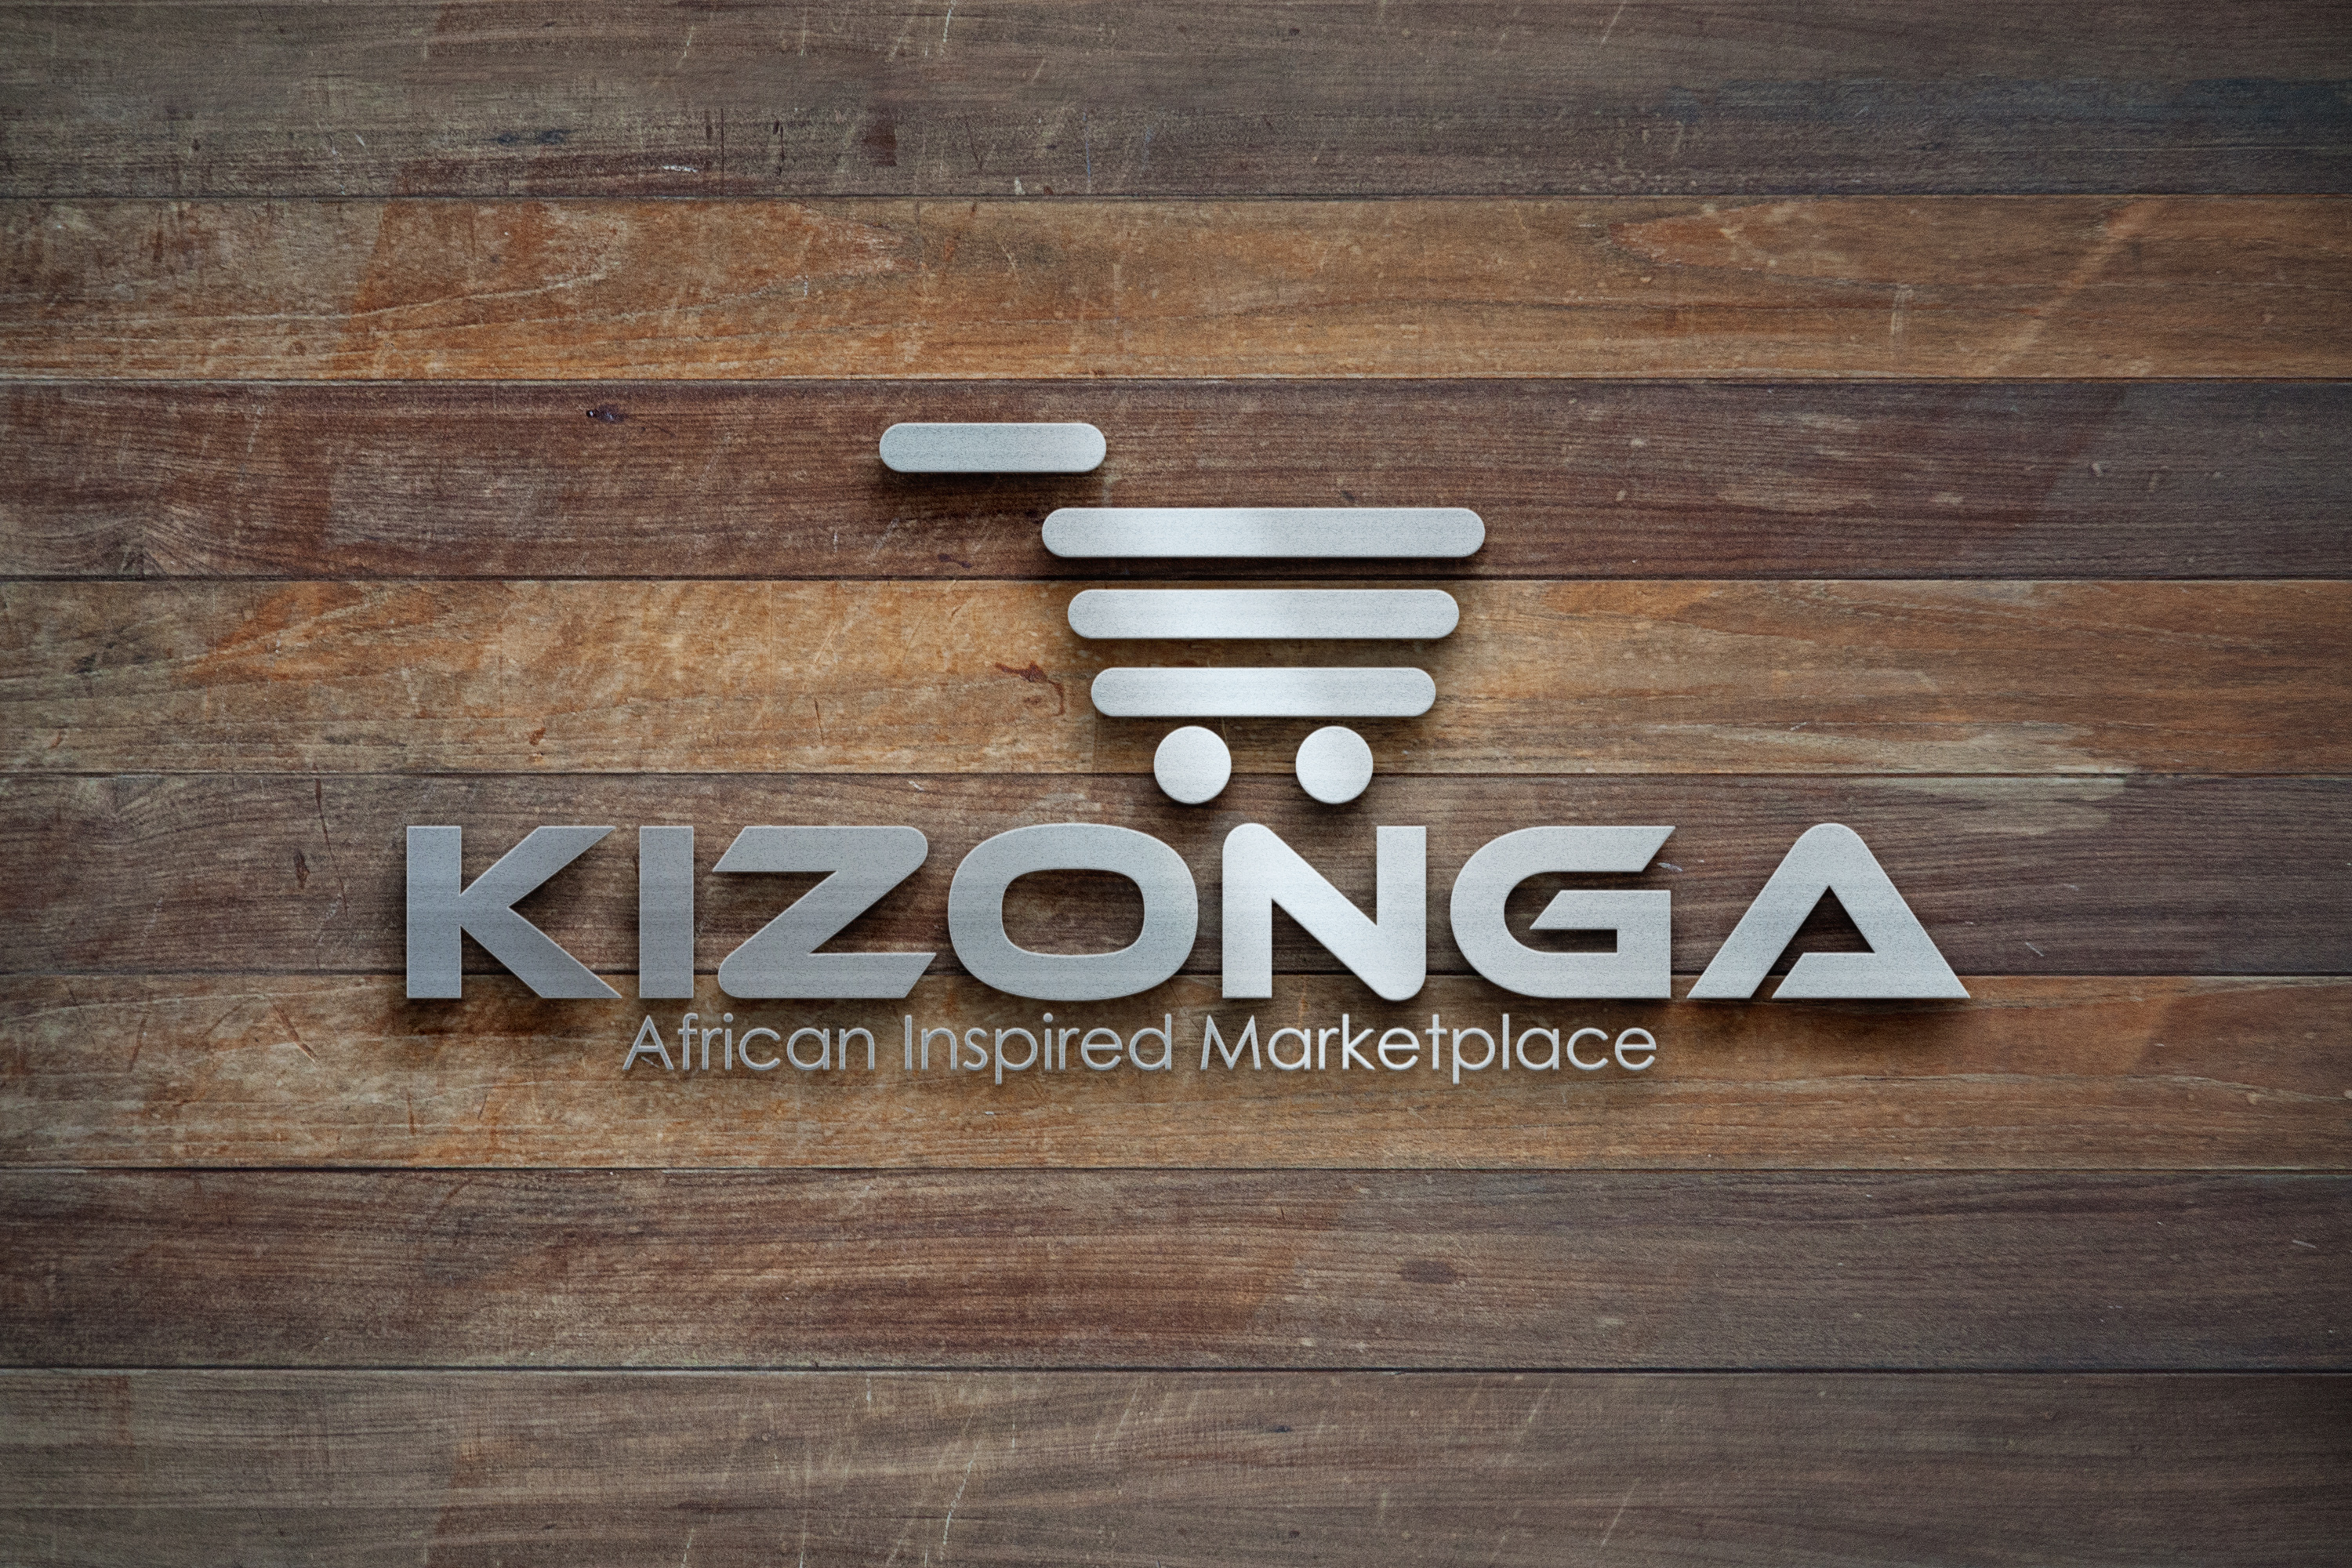 3b344fa91a3 KIZONGA - Global marketplace for African Inspired Products